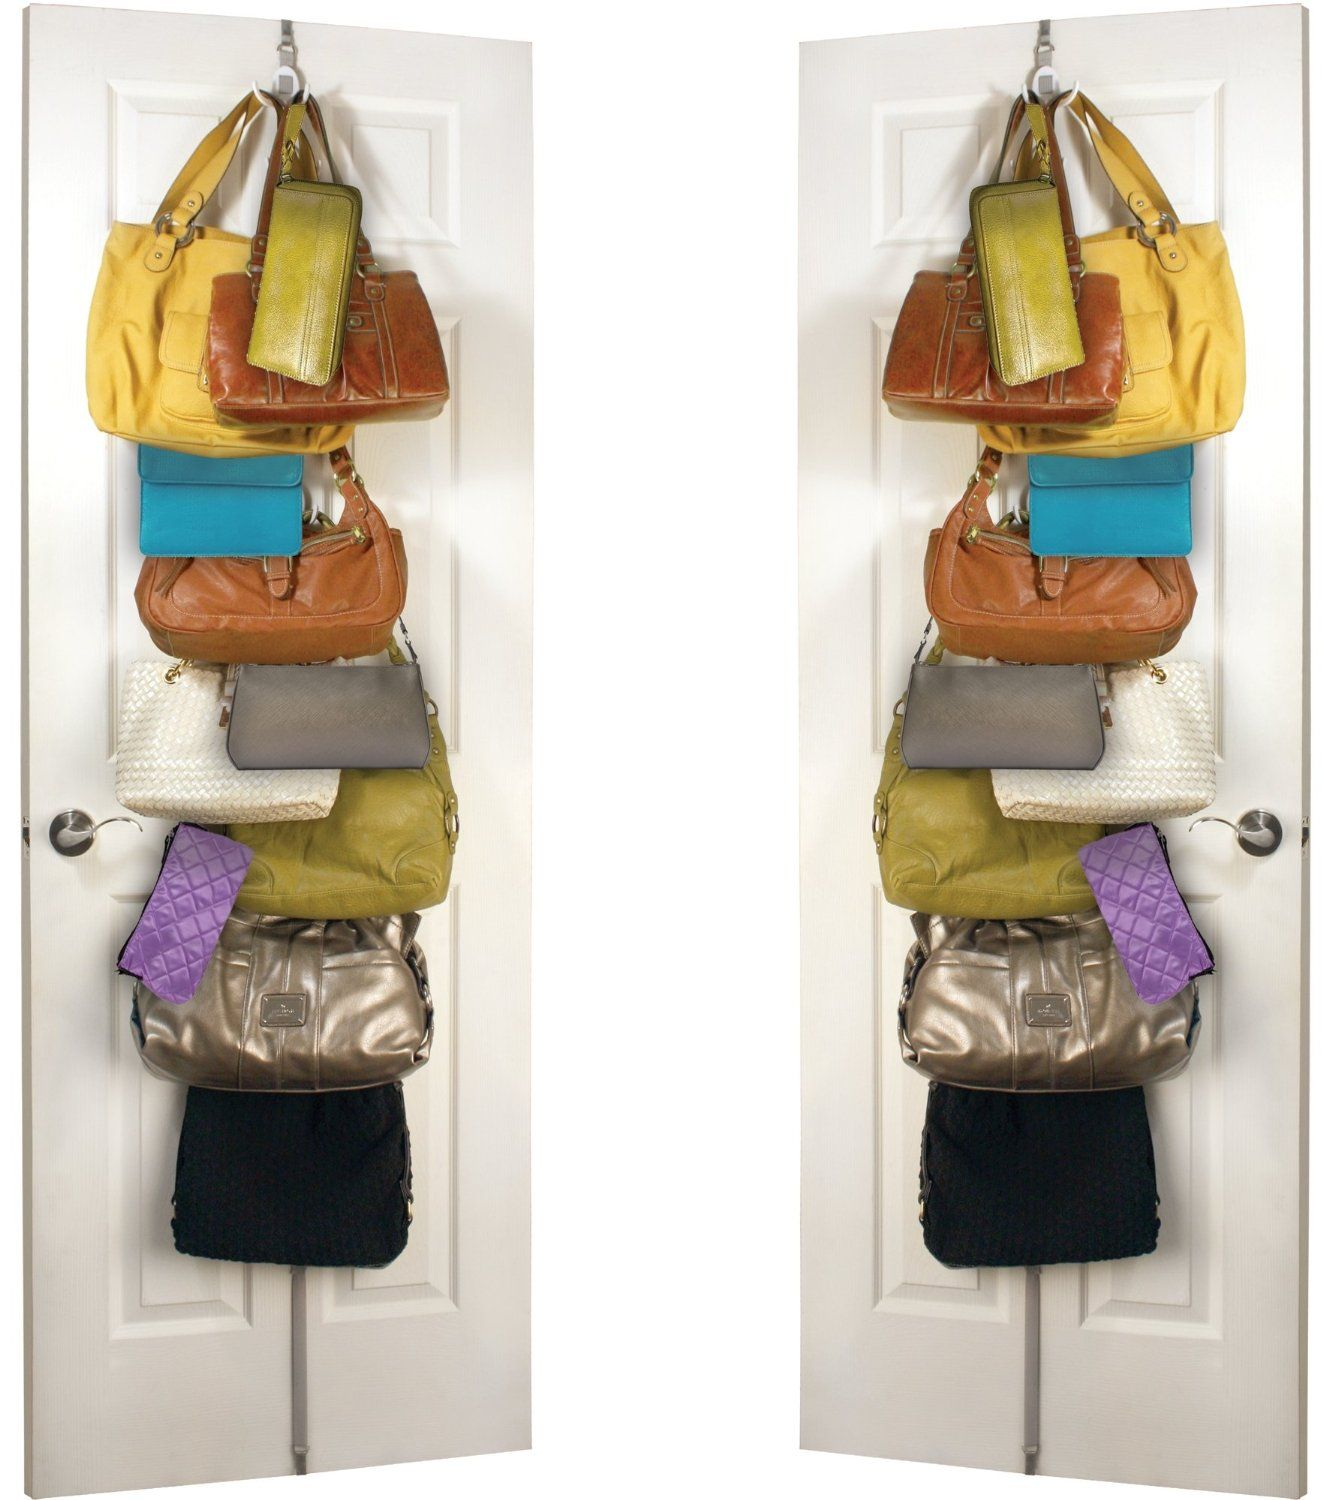 Handbag Storage Rack With Double Hooks For 24 Handbags Purses Plus By Jokari Twin Pack Hanging Organiser Solution Over Door Or On The Wall Also